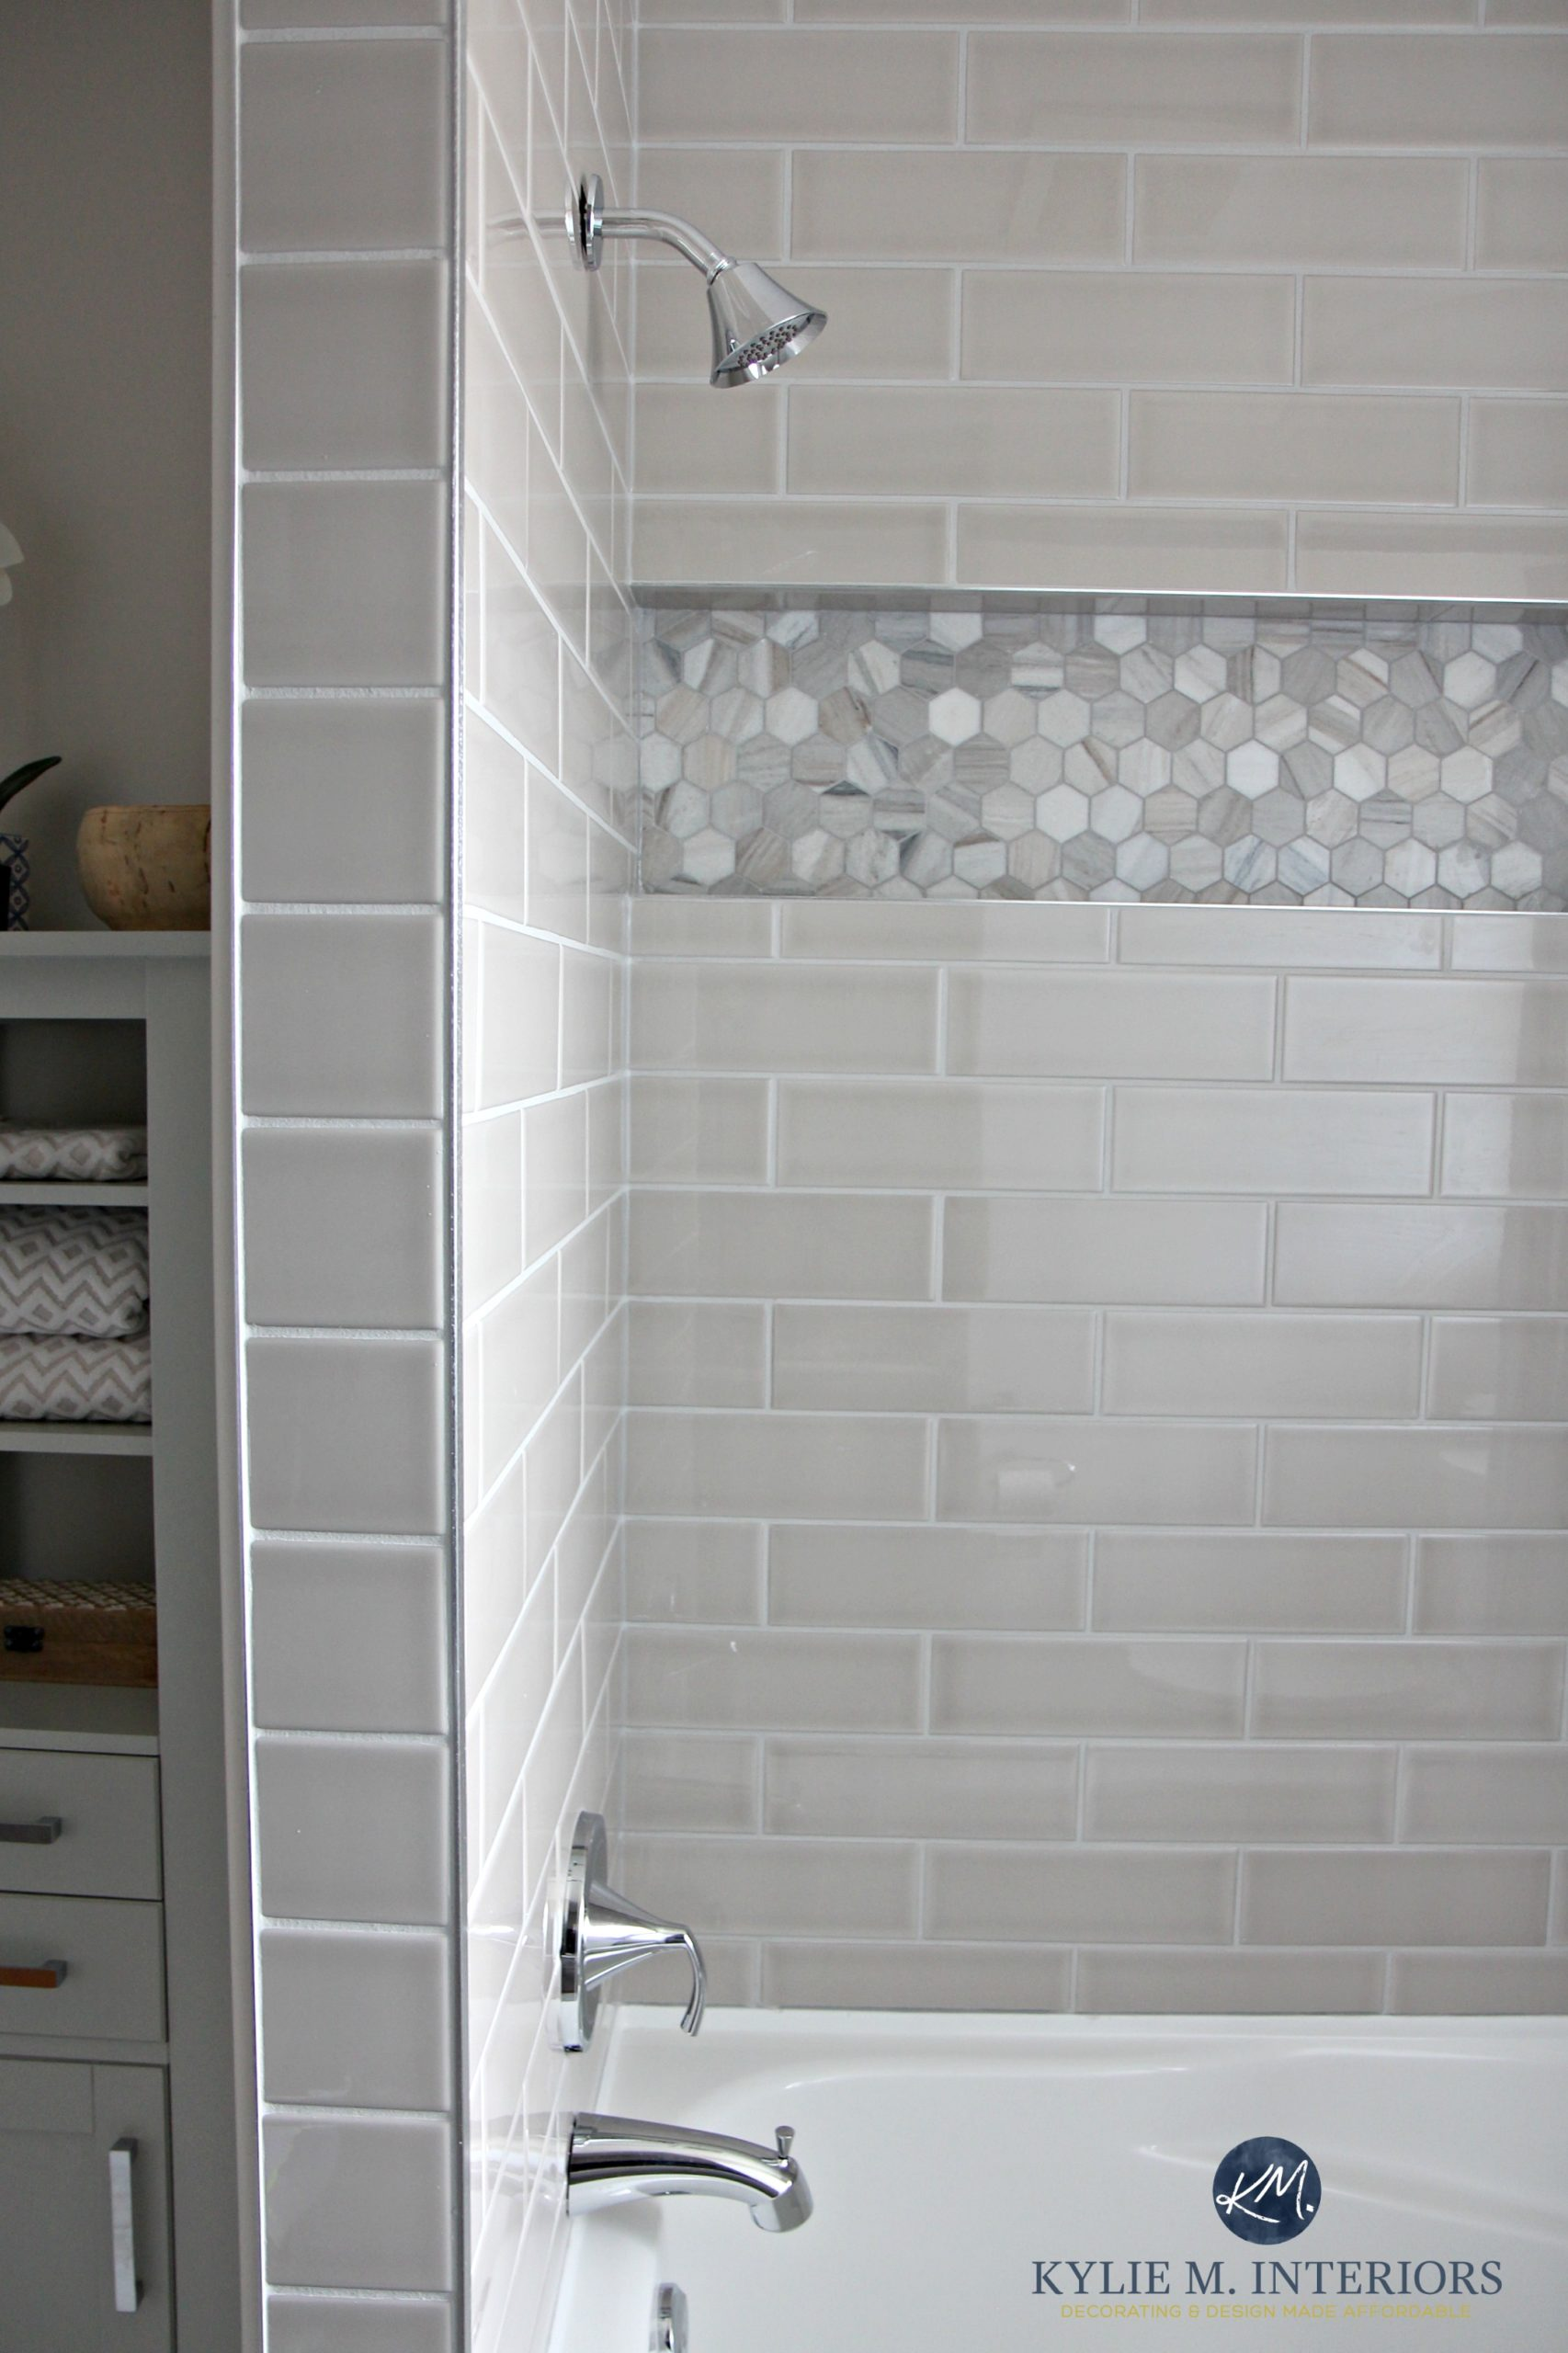 Bathroom with tub remodel with moen glyde fixtures greige and gray bathroom with tub remodel with moen glyde fixtures greige and gray subway tile and hexagon marble niche or alcove by kylie m interiors dailygadgetfo Choice Image